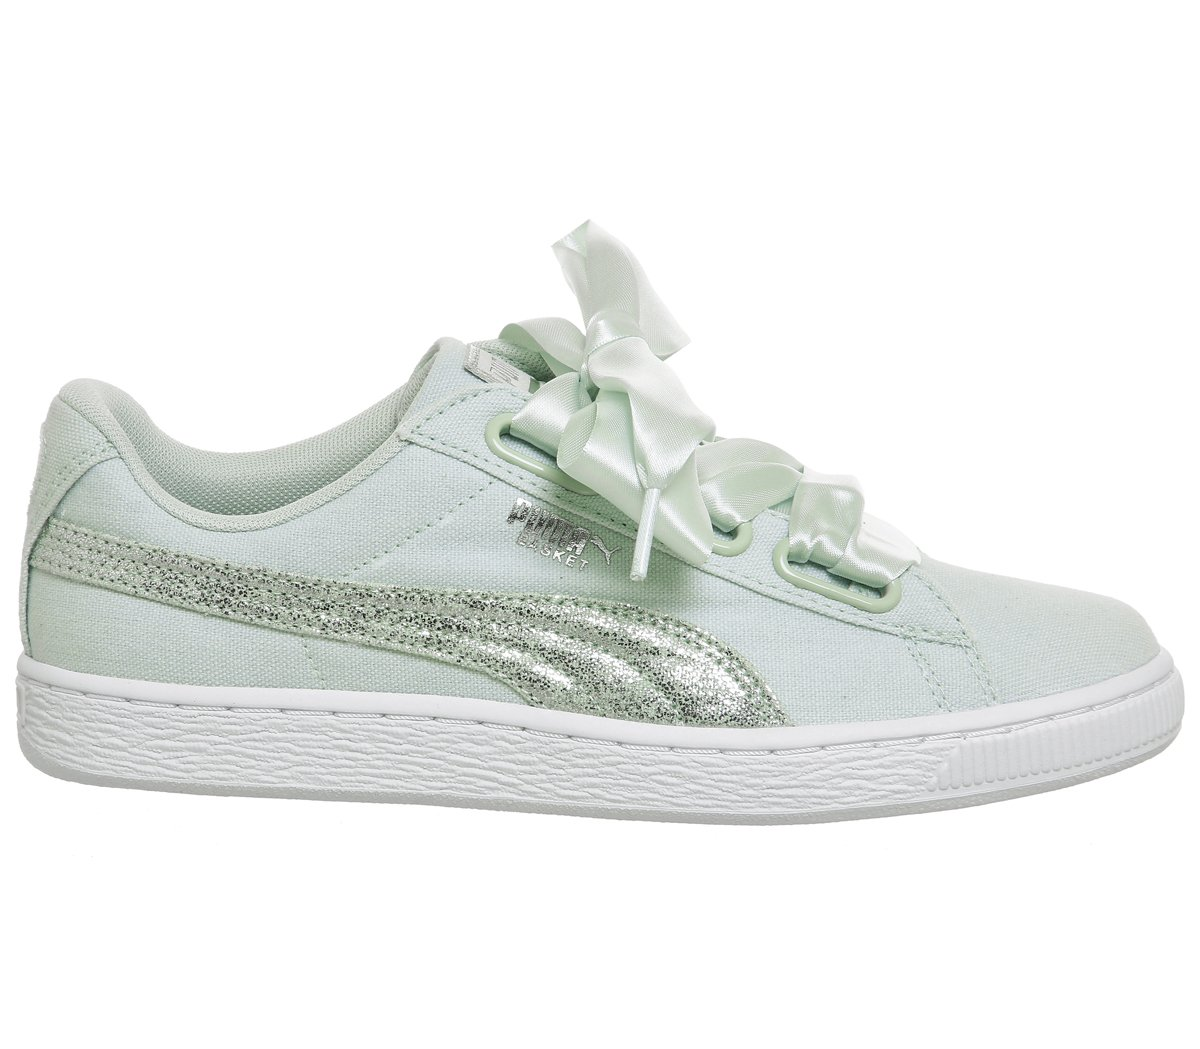 best sneakers b54cc cfff7 PUMA Women's Basket Heart Canvas WNS, Blue Flower-White ...